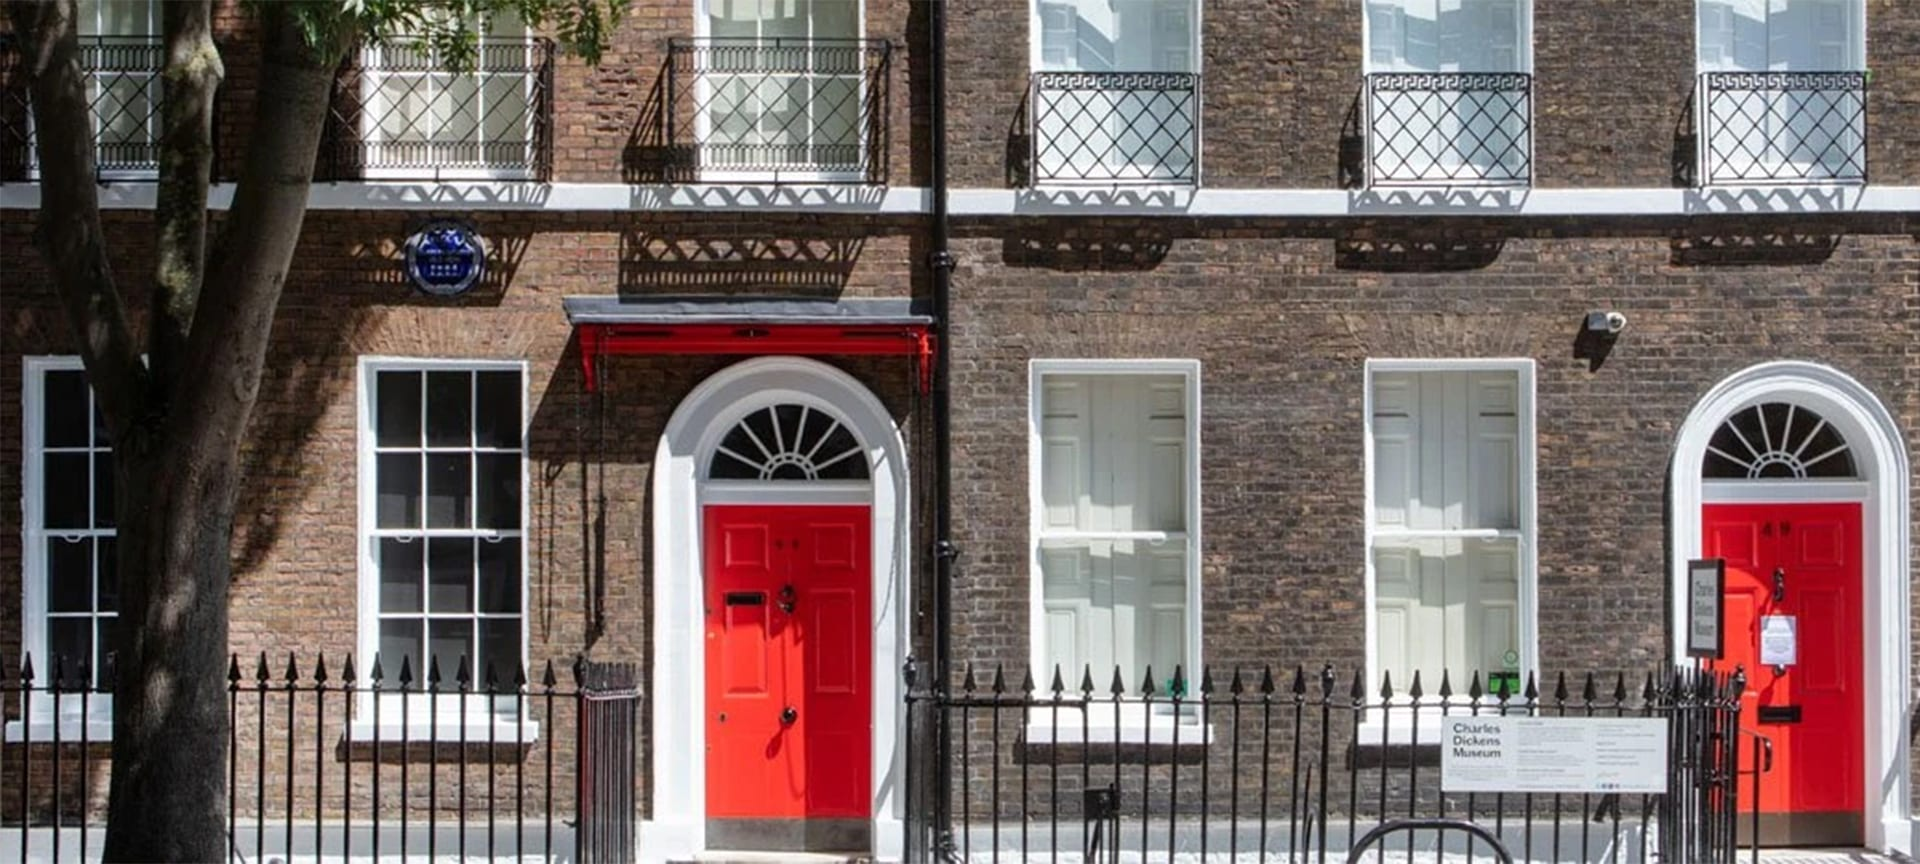 Welcome to 48 Doughty Street, the London home of Charles Dickens. This is where the author wrote Oliver Twist, The Pickwick Papers and Nicholas Nickleby. It's where he first achieved international fame as one of the world's greatest storytellers.